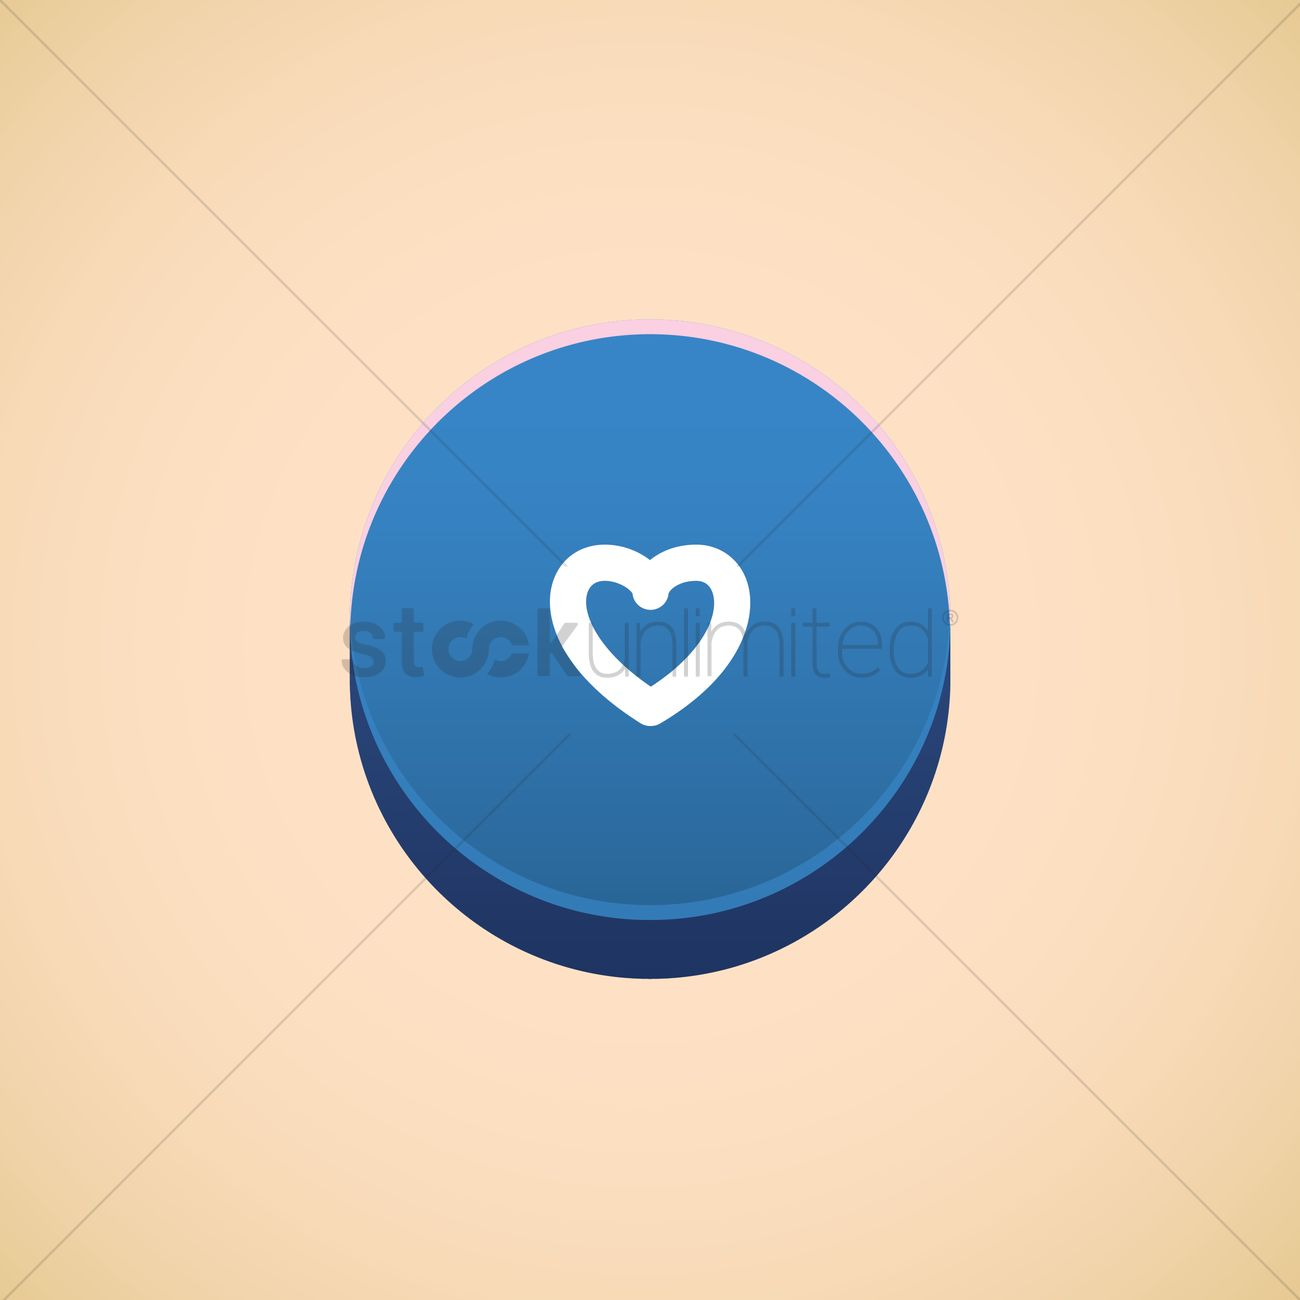 Heart shaped button Vector Image - 1372077 | StockUnlimited